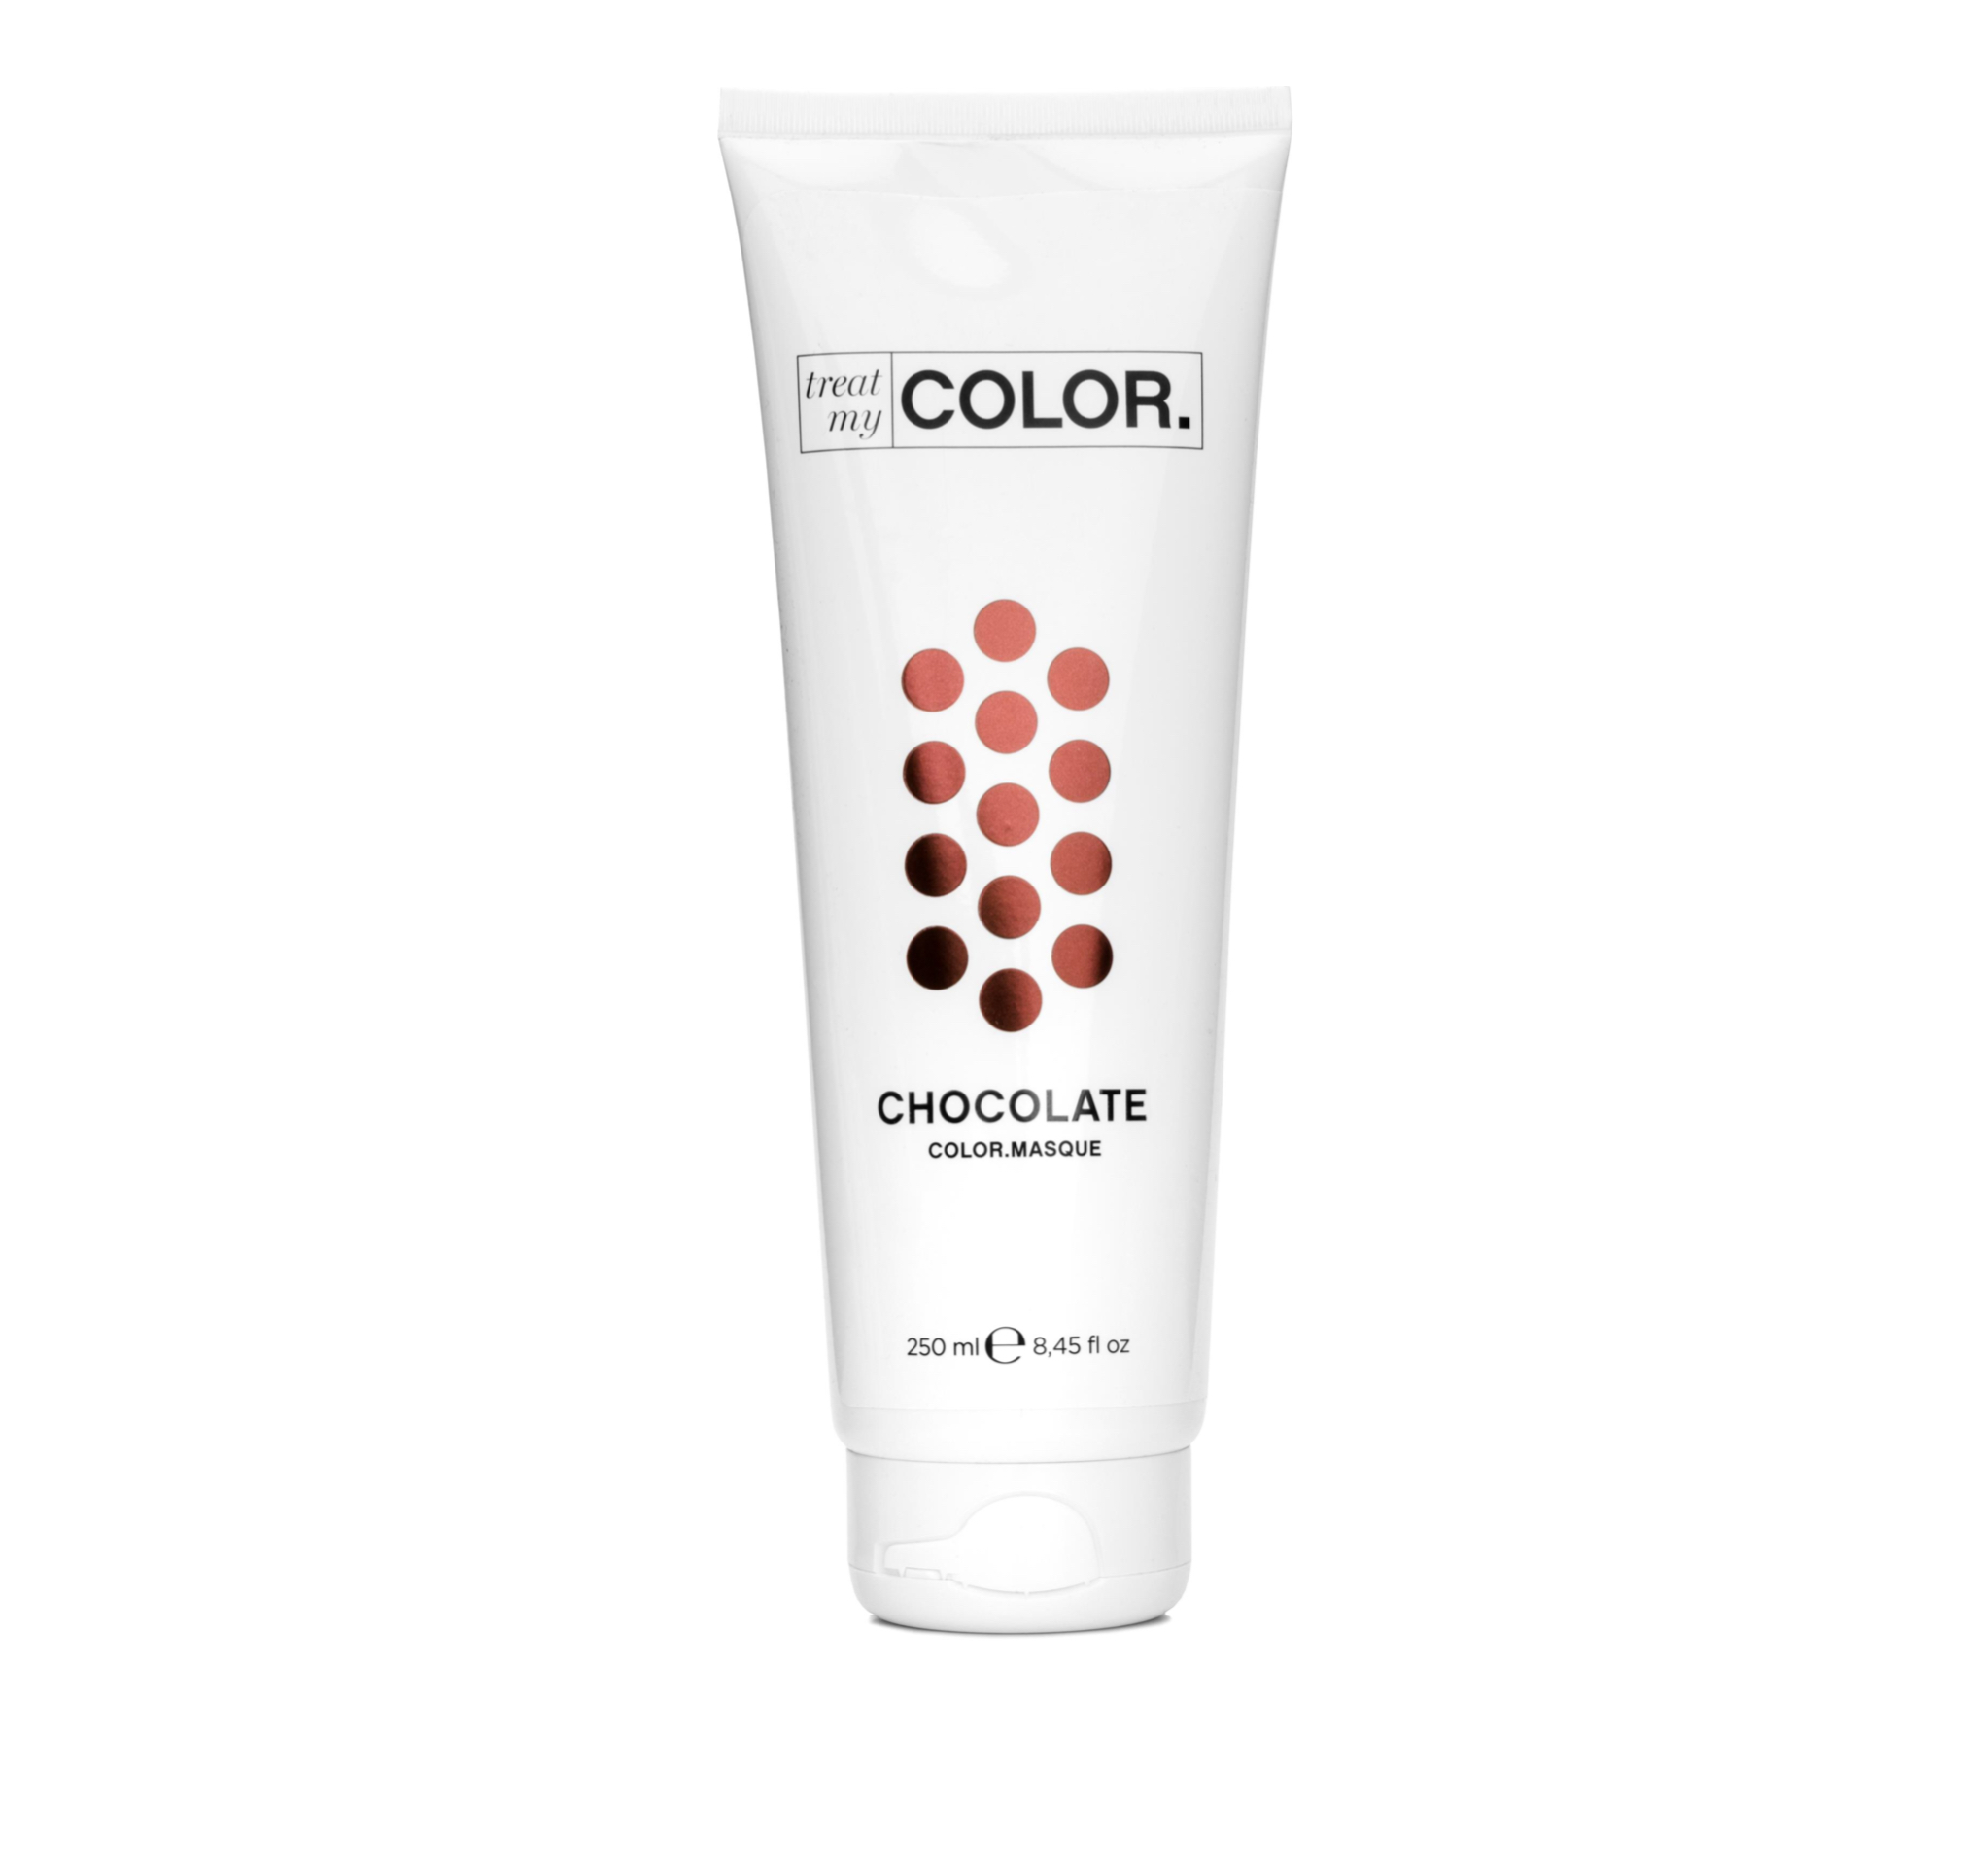 Color Masque Chocolate